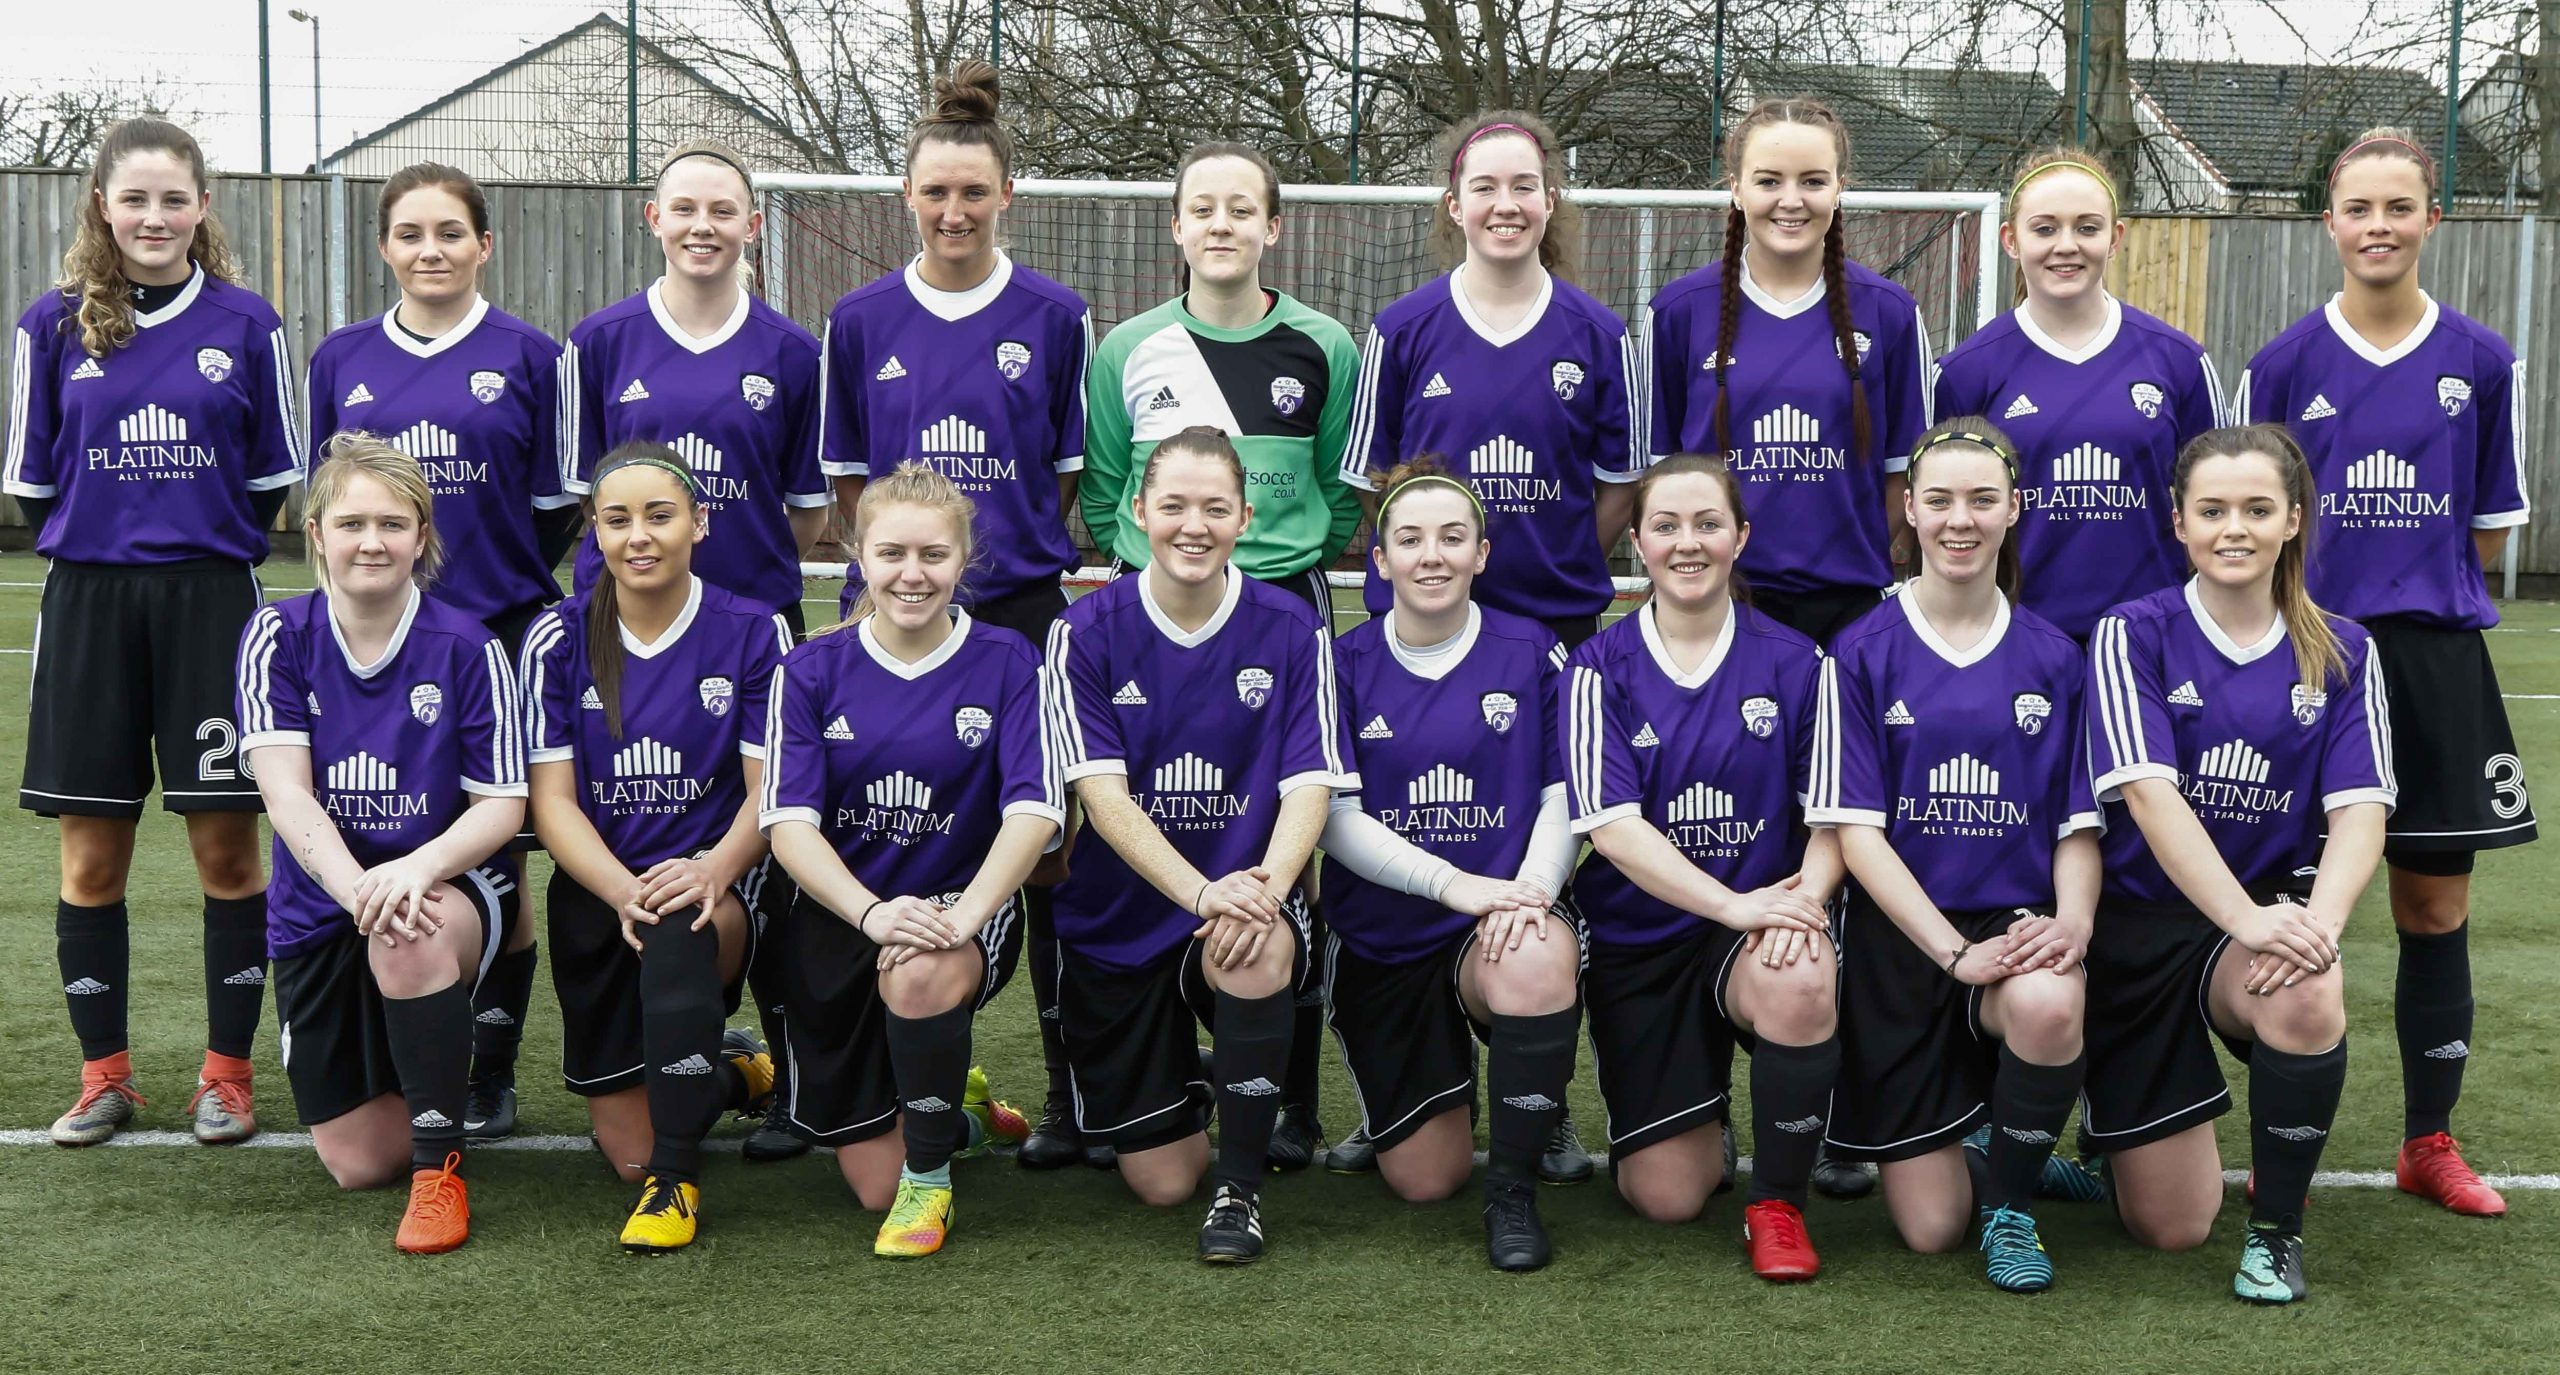 Glasgow Girls FC Scottish Building Society Scottish Womens Premier League 2 Squad Photograph 2018